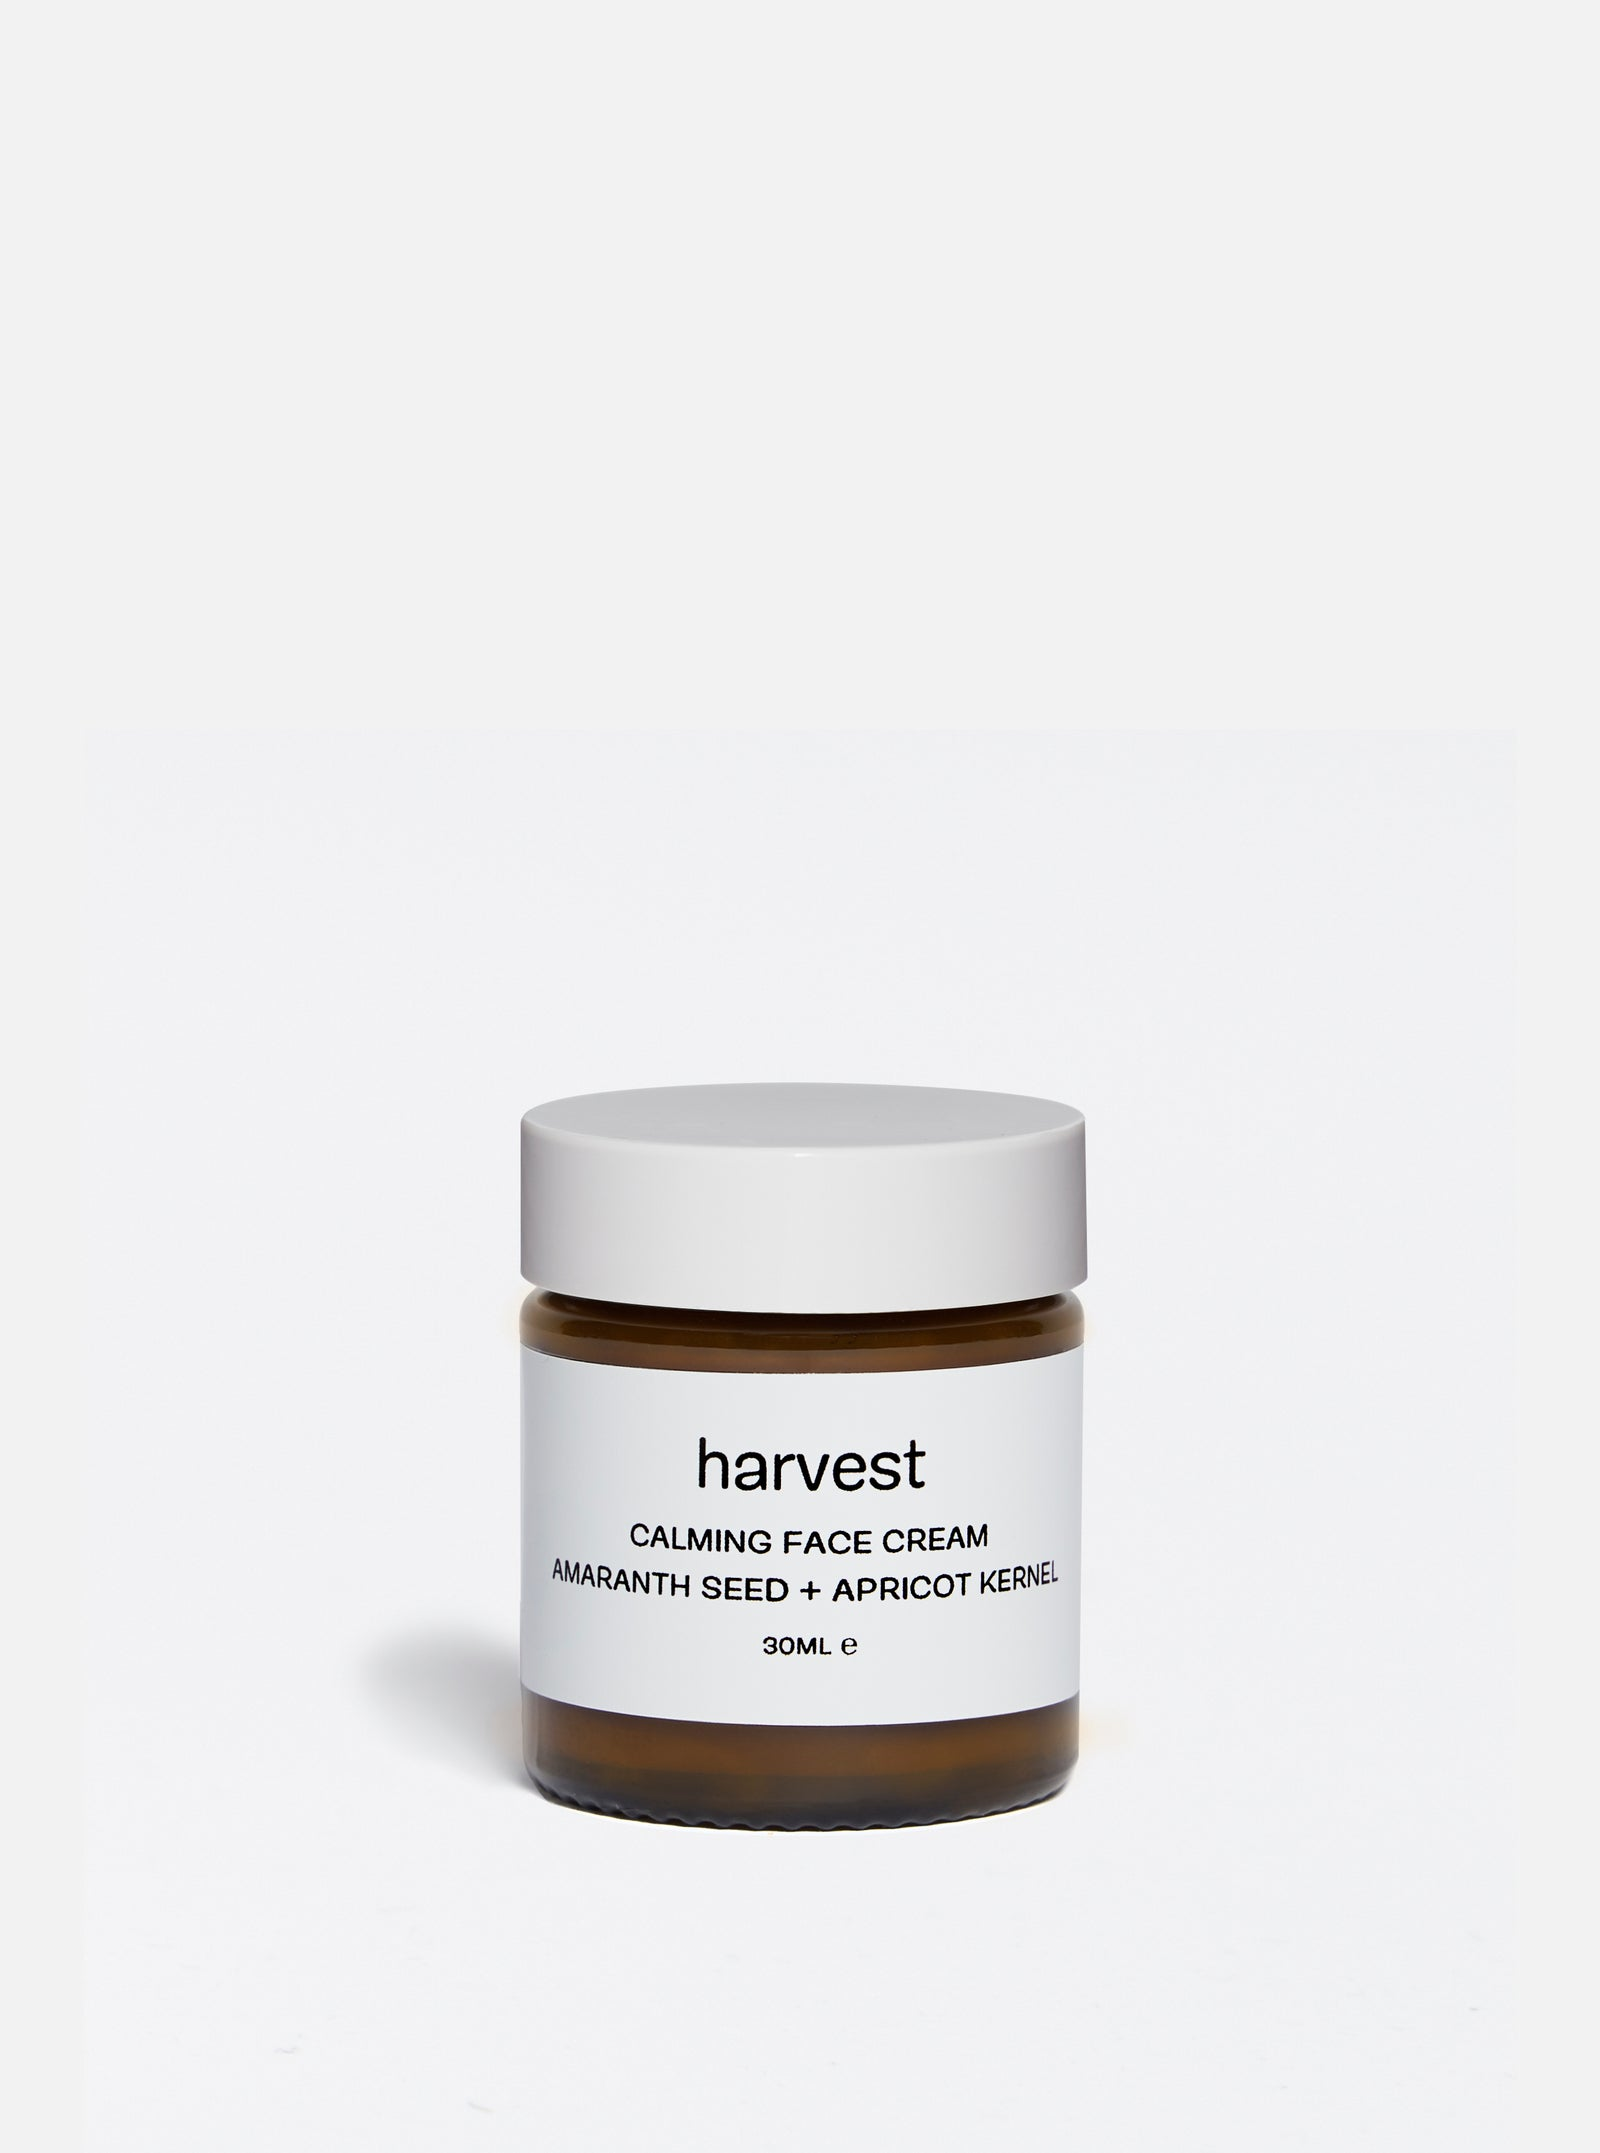 harvest 'Amaranth Seed + Apricot Kernel' calming face cream - 30ml.